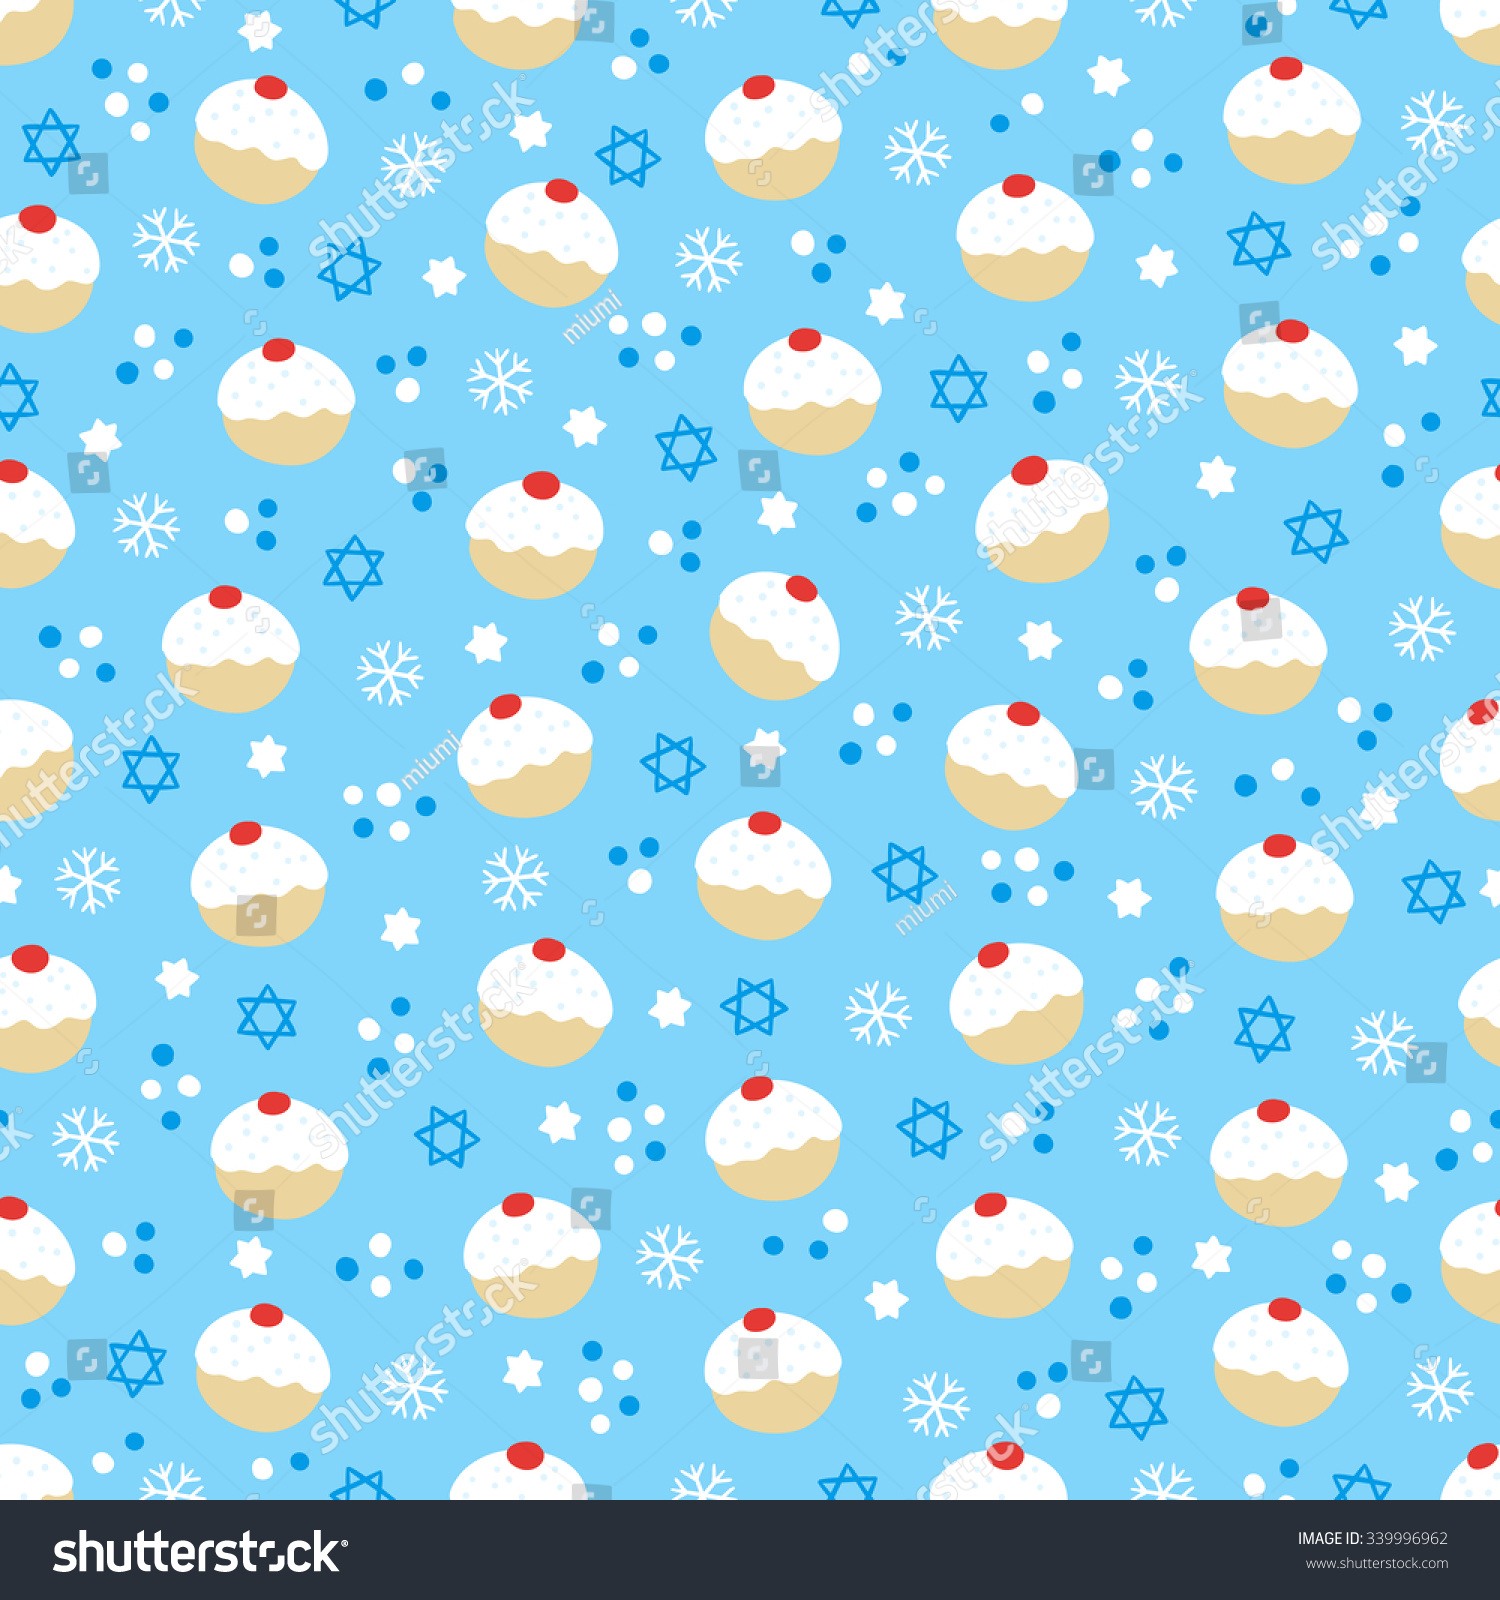 Hanukkah Seamless Pattern With Donuts Snowflakes Ans Jewish Star On Blue Background Perfect For